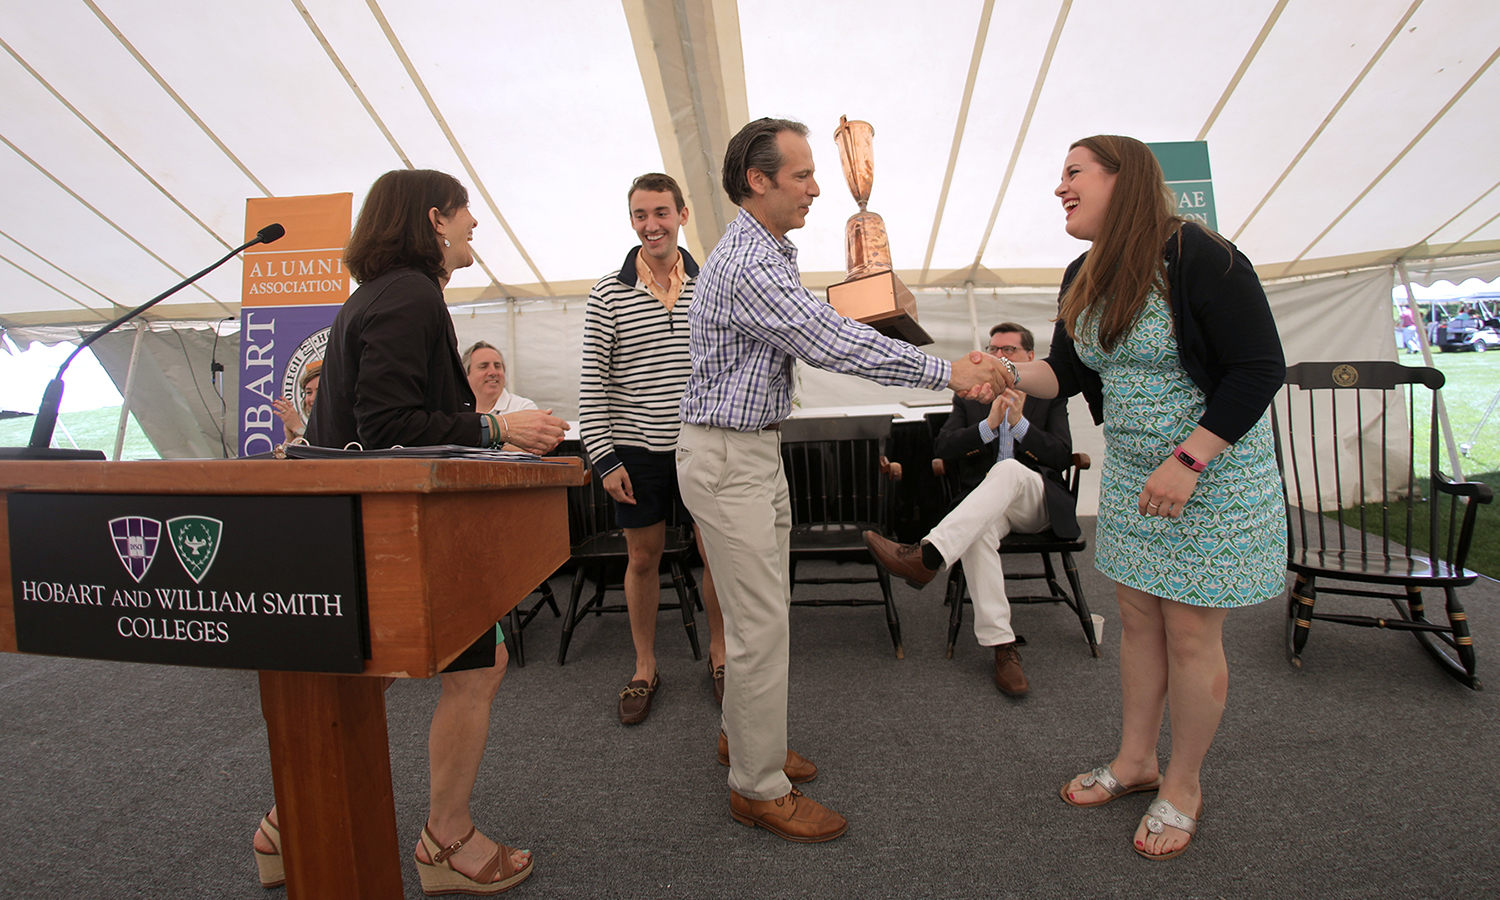 Meredith Ciaccia '12 recieves the Alumni and Alumnae Association participation trophy from Jared Weeden. The trophy is awarded to the class with the highest percentage attendance for the weekend.